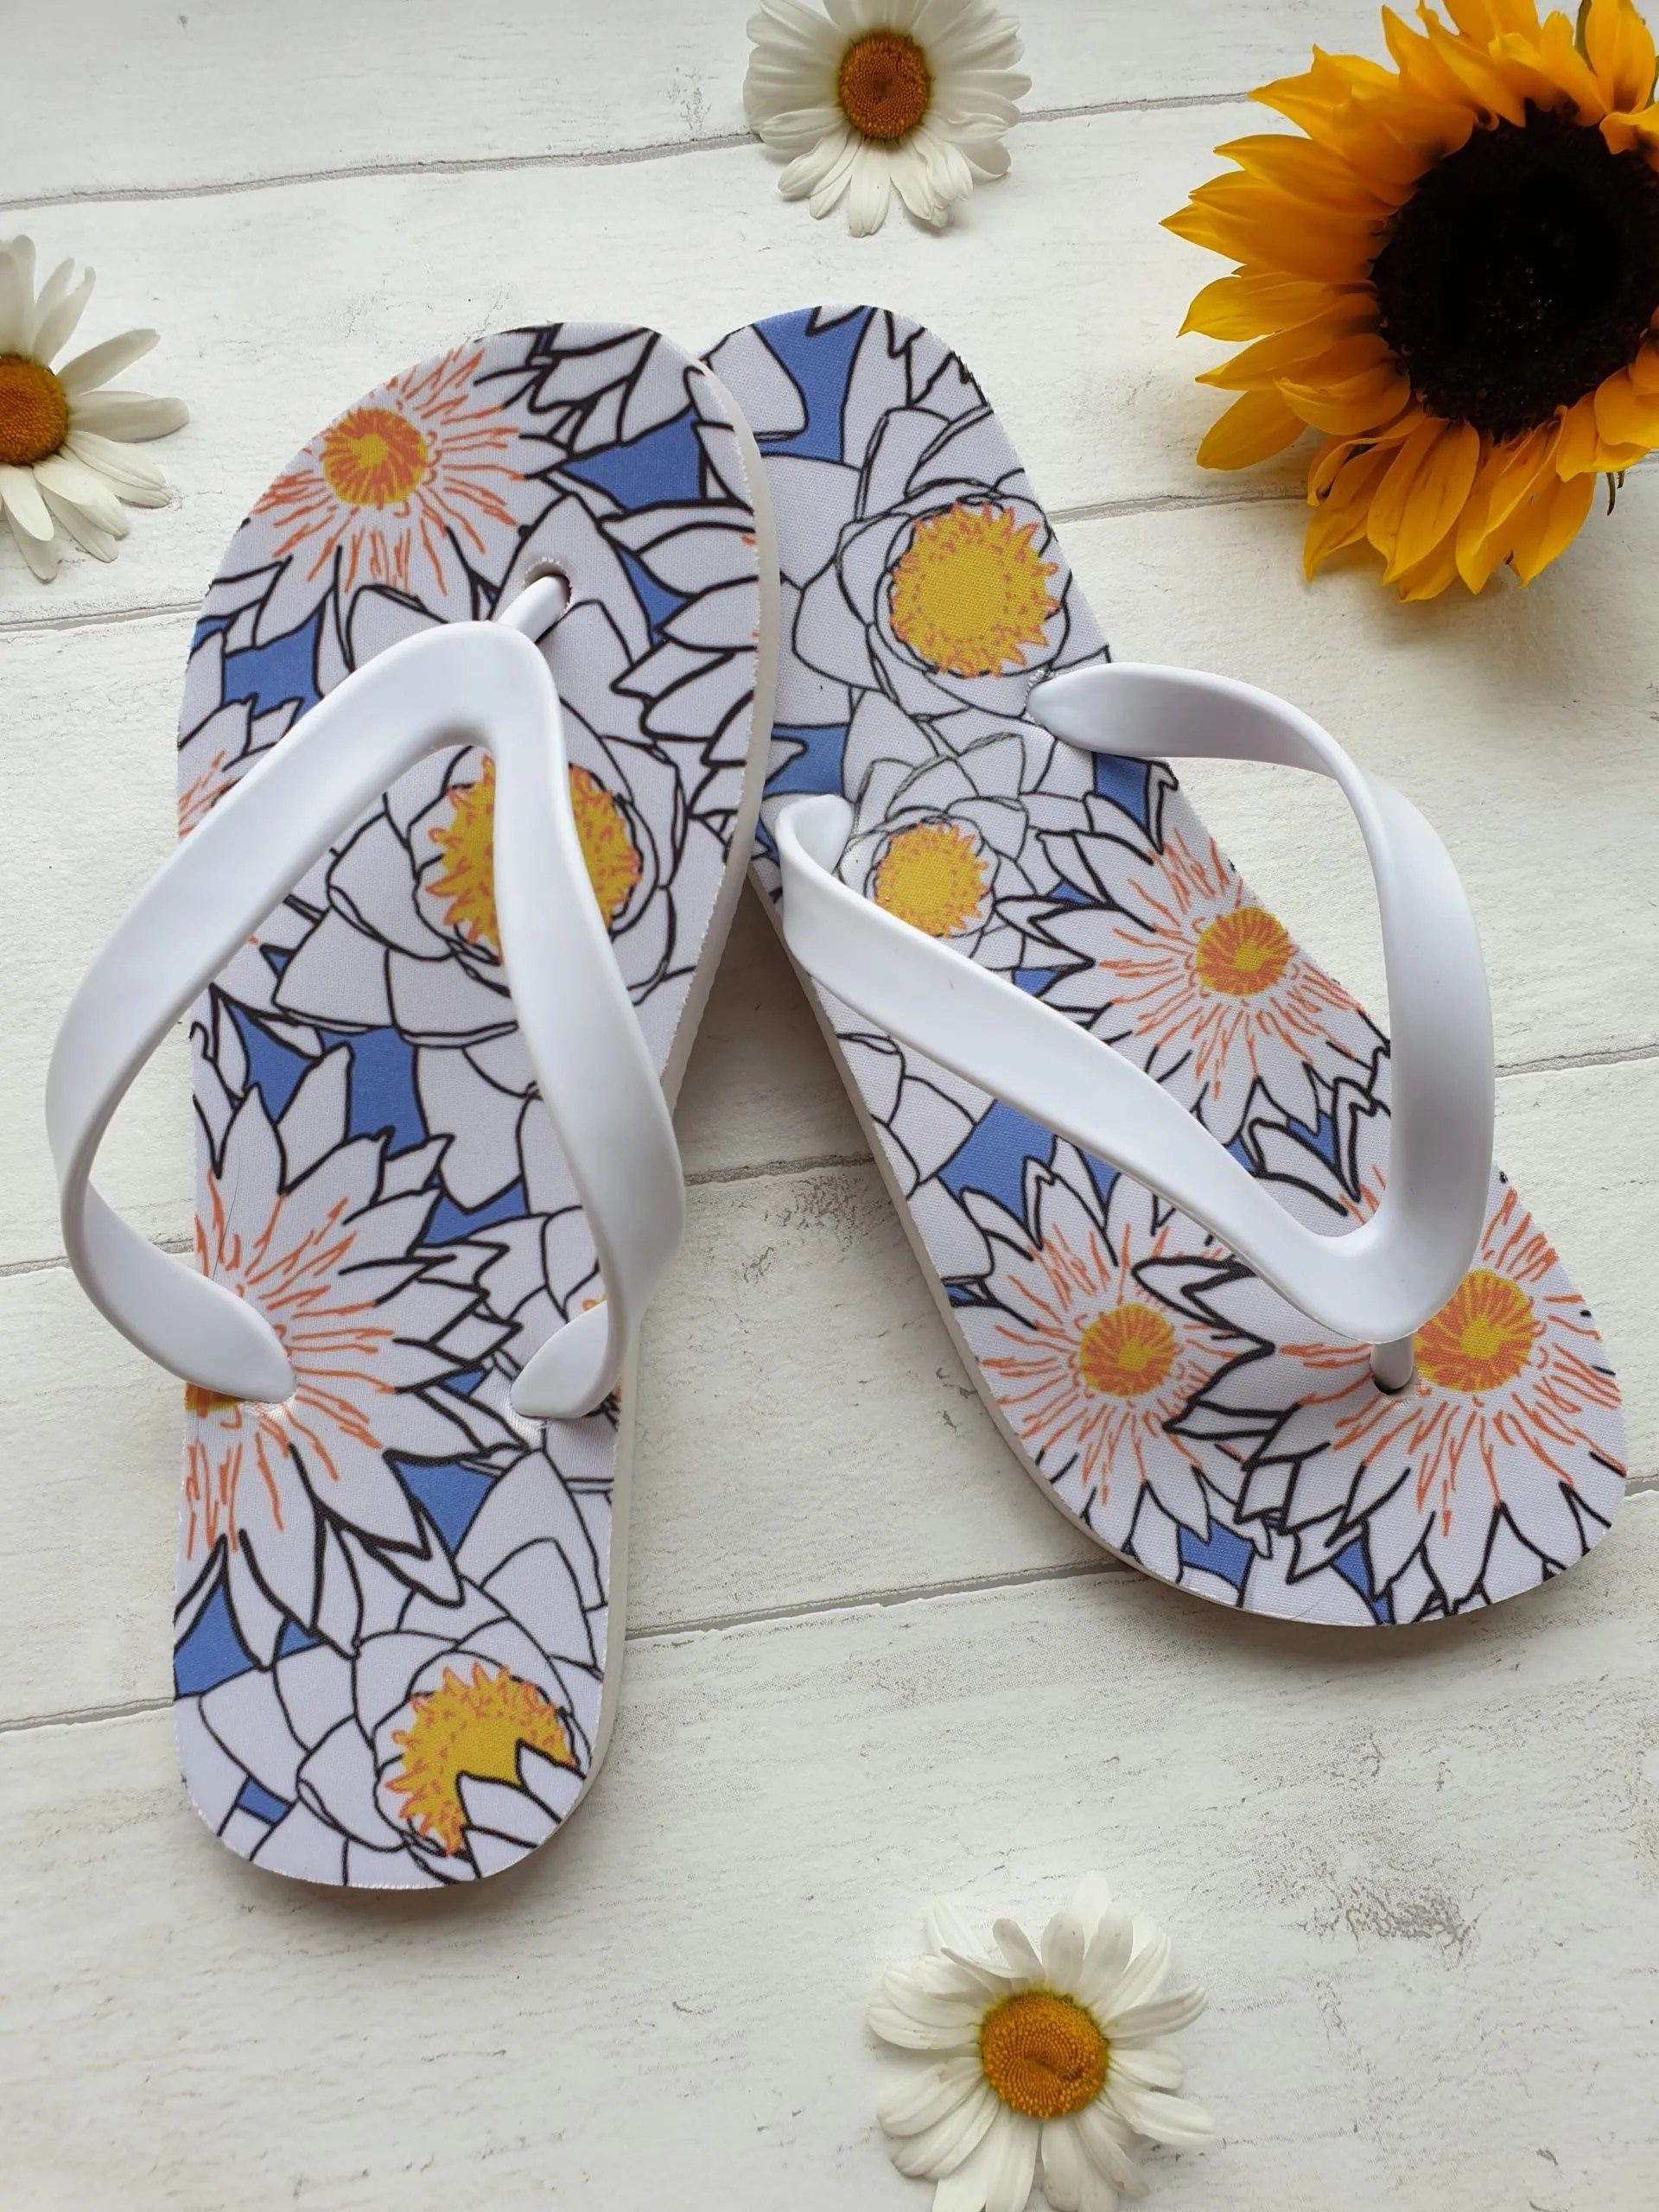 Flip Flops with a blue, yellow and white Lotus print